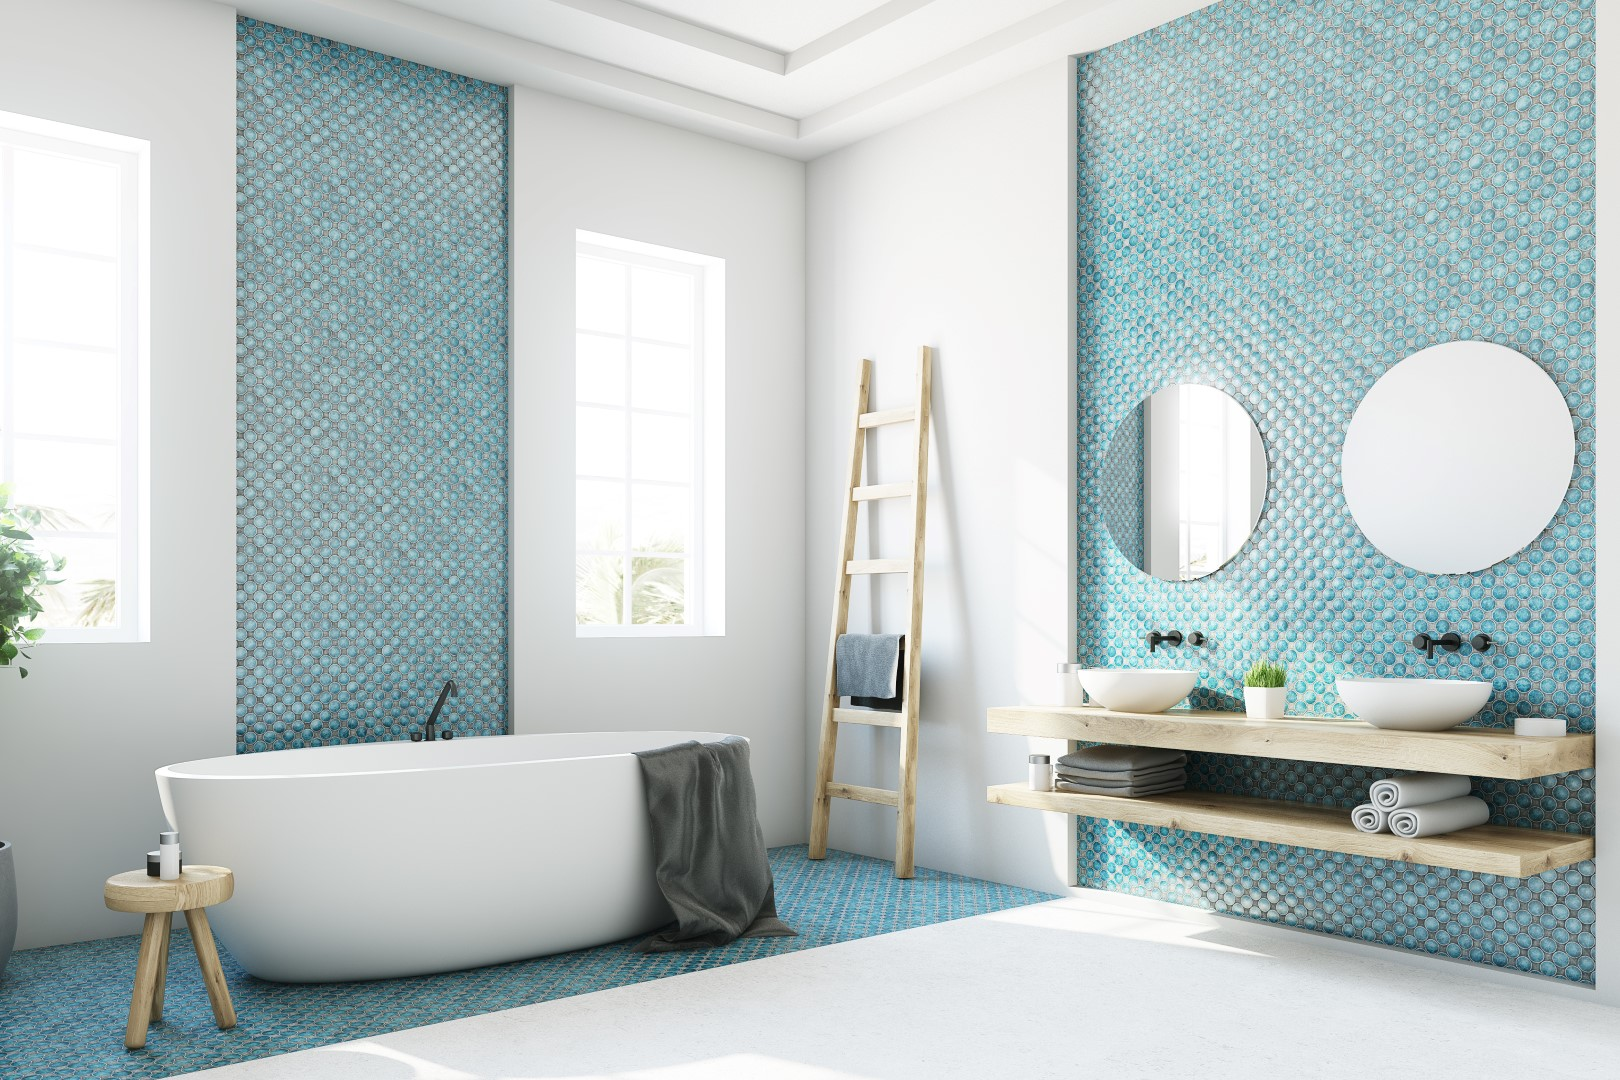 5 incredible tiles ideas 5 Incredible Tiles Ideas For Your Bathroom AdobeStock 173570437 denisismagilov